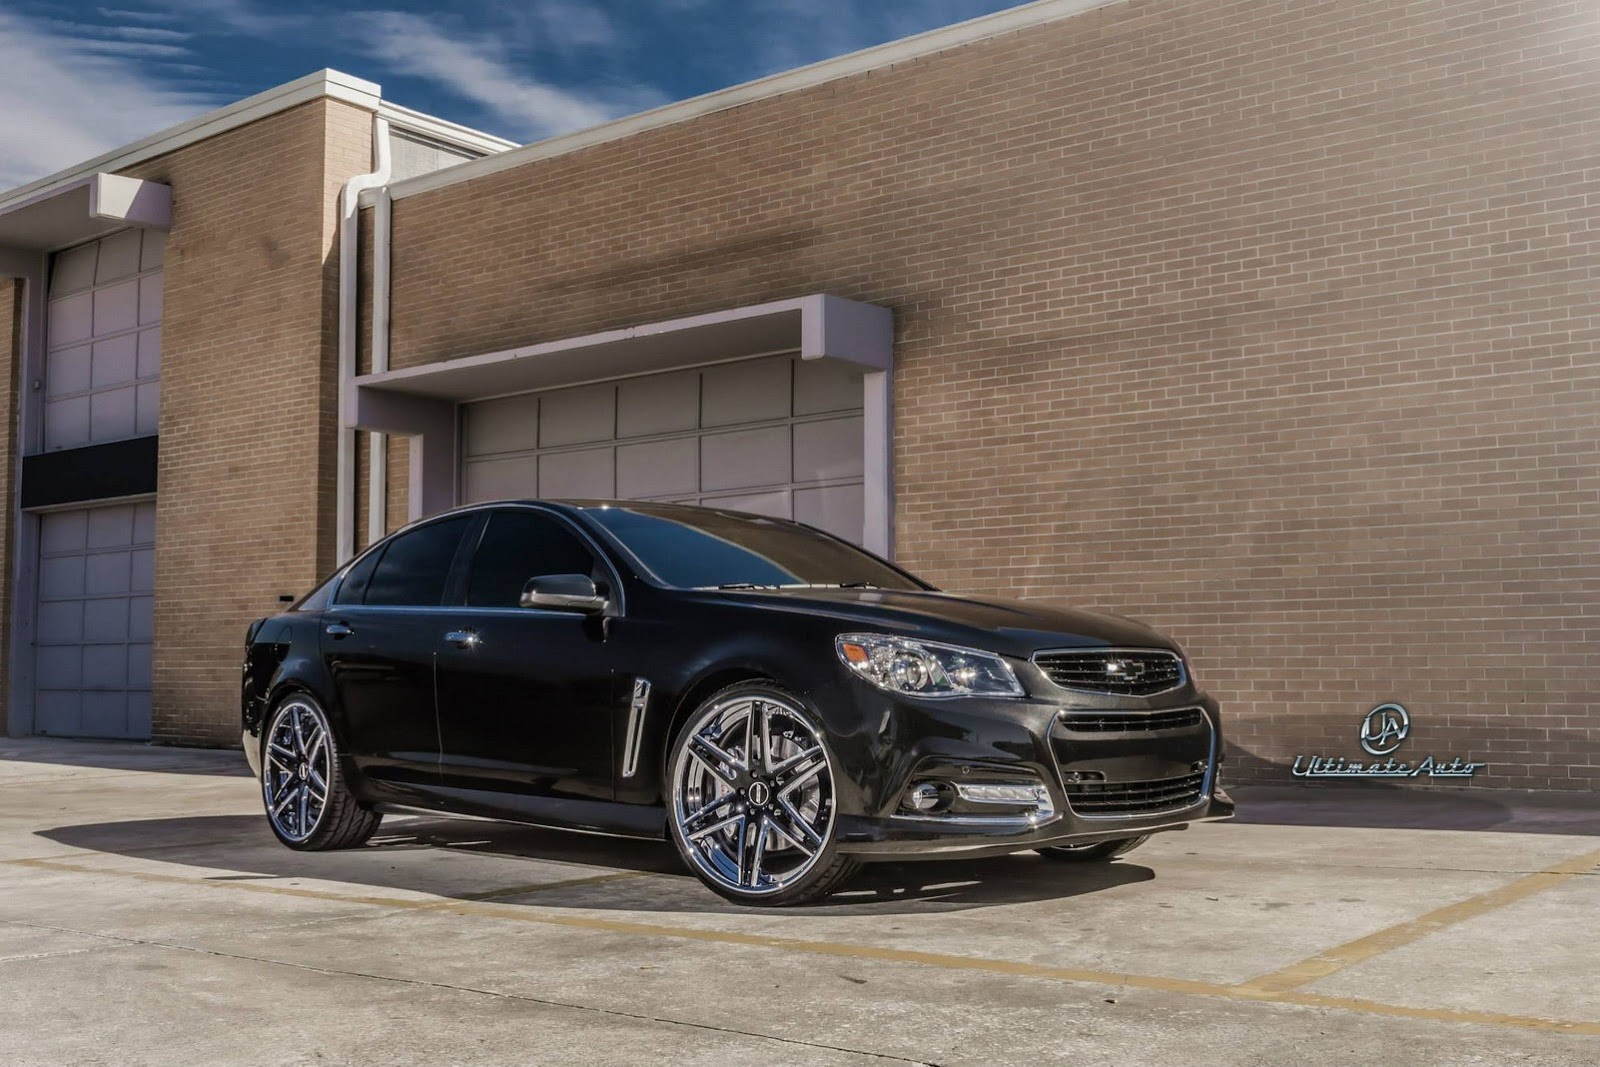 2014 Chevrolet Ss By Ultimate Auto Amcarguide Com